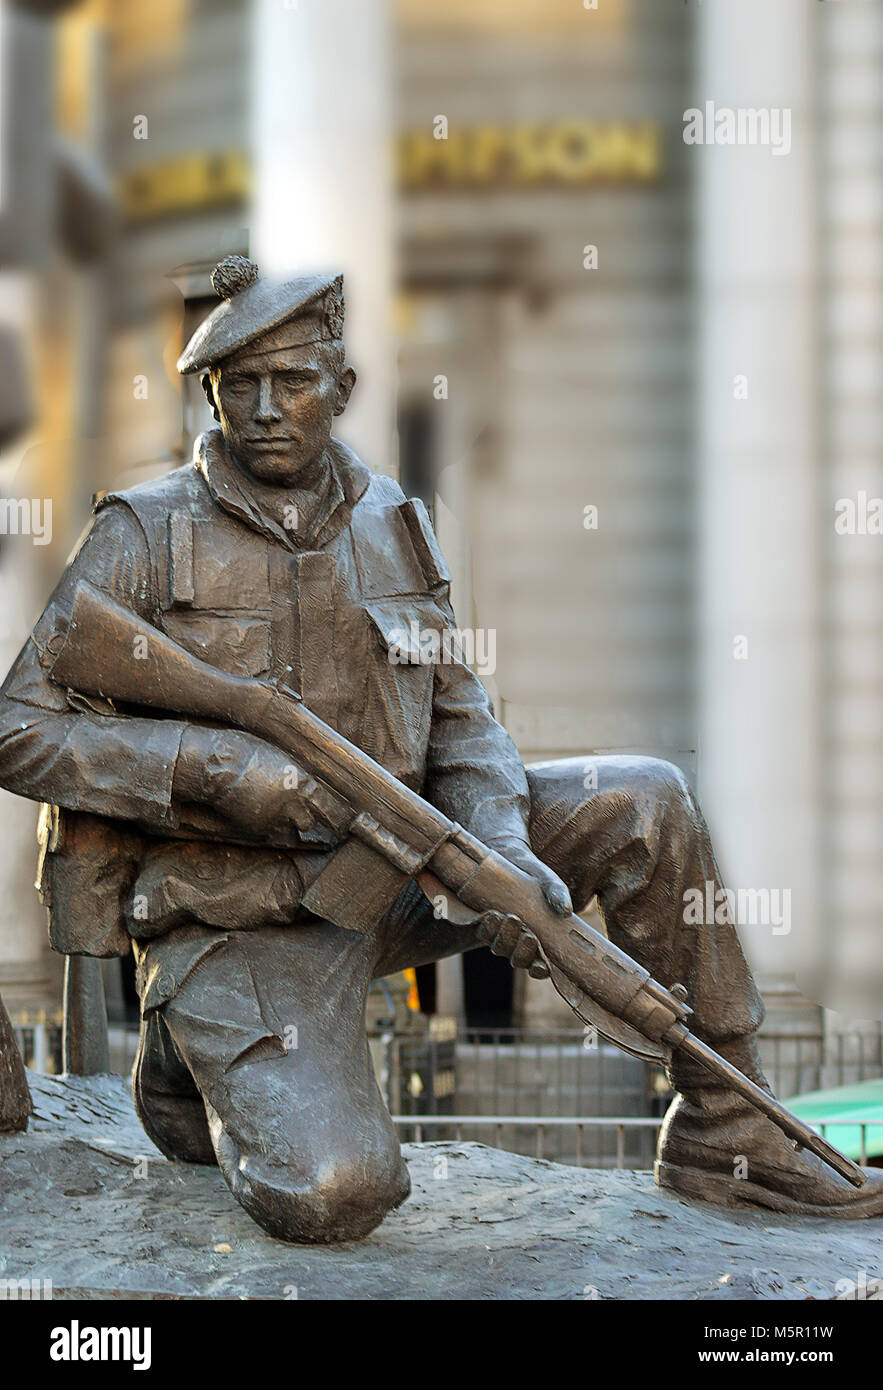 ABERDEEN, SCOTLAND - 12 FEBRUARY 2018: A detail from Mark Richards's statue commemorating the city's local - Stock Image